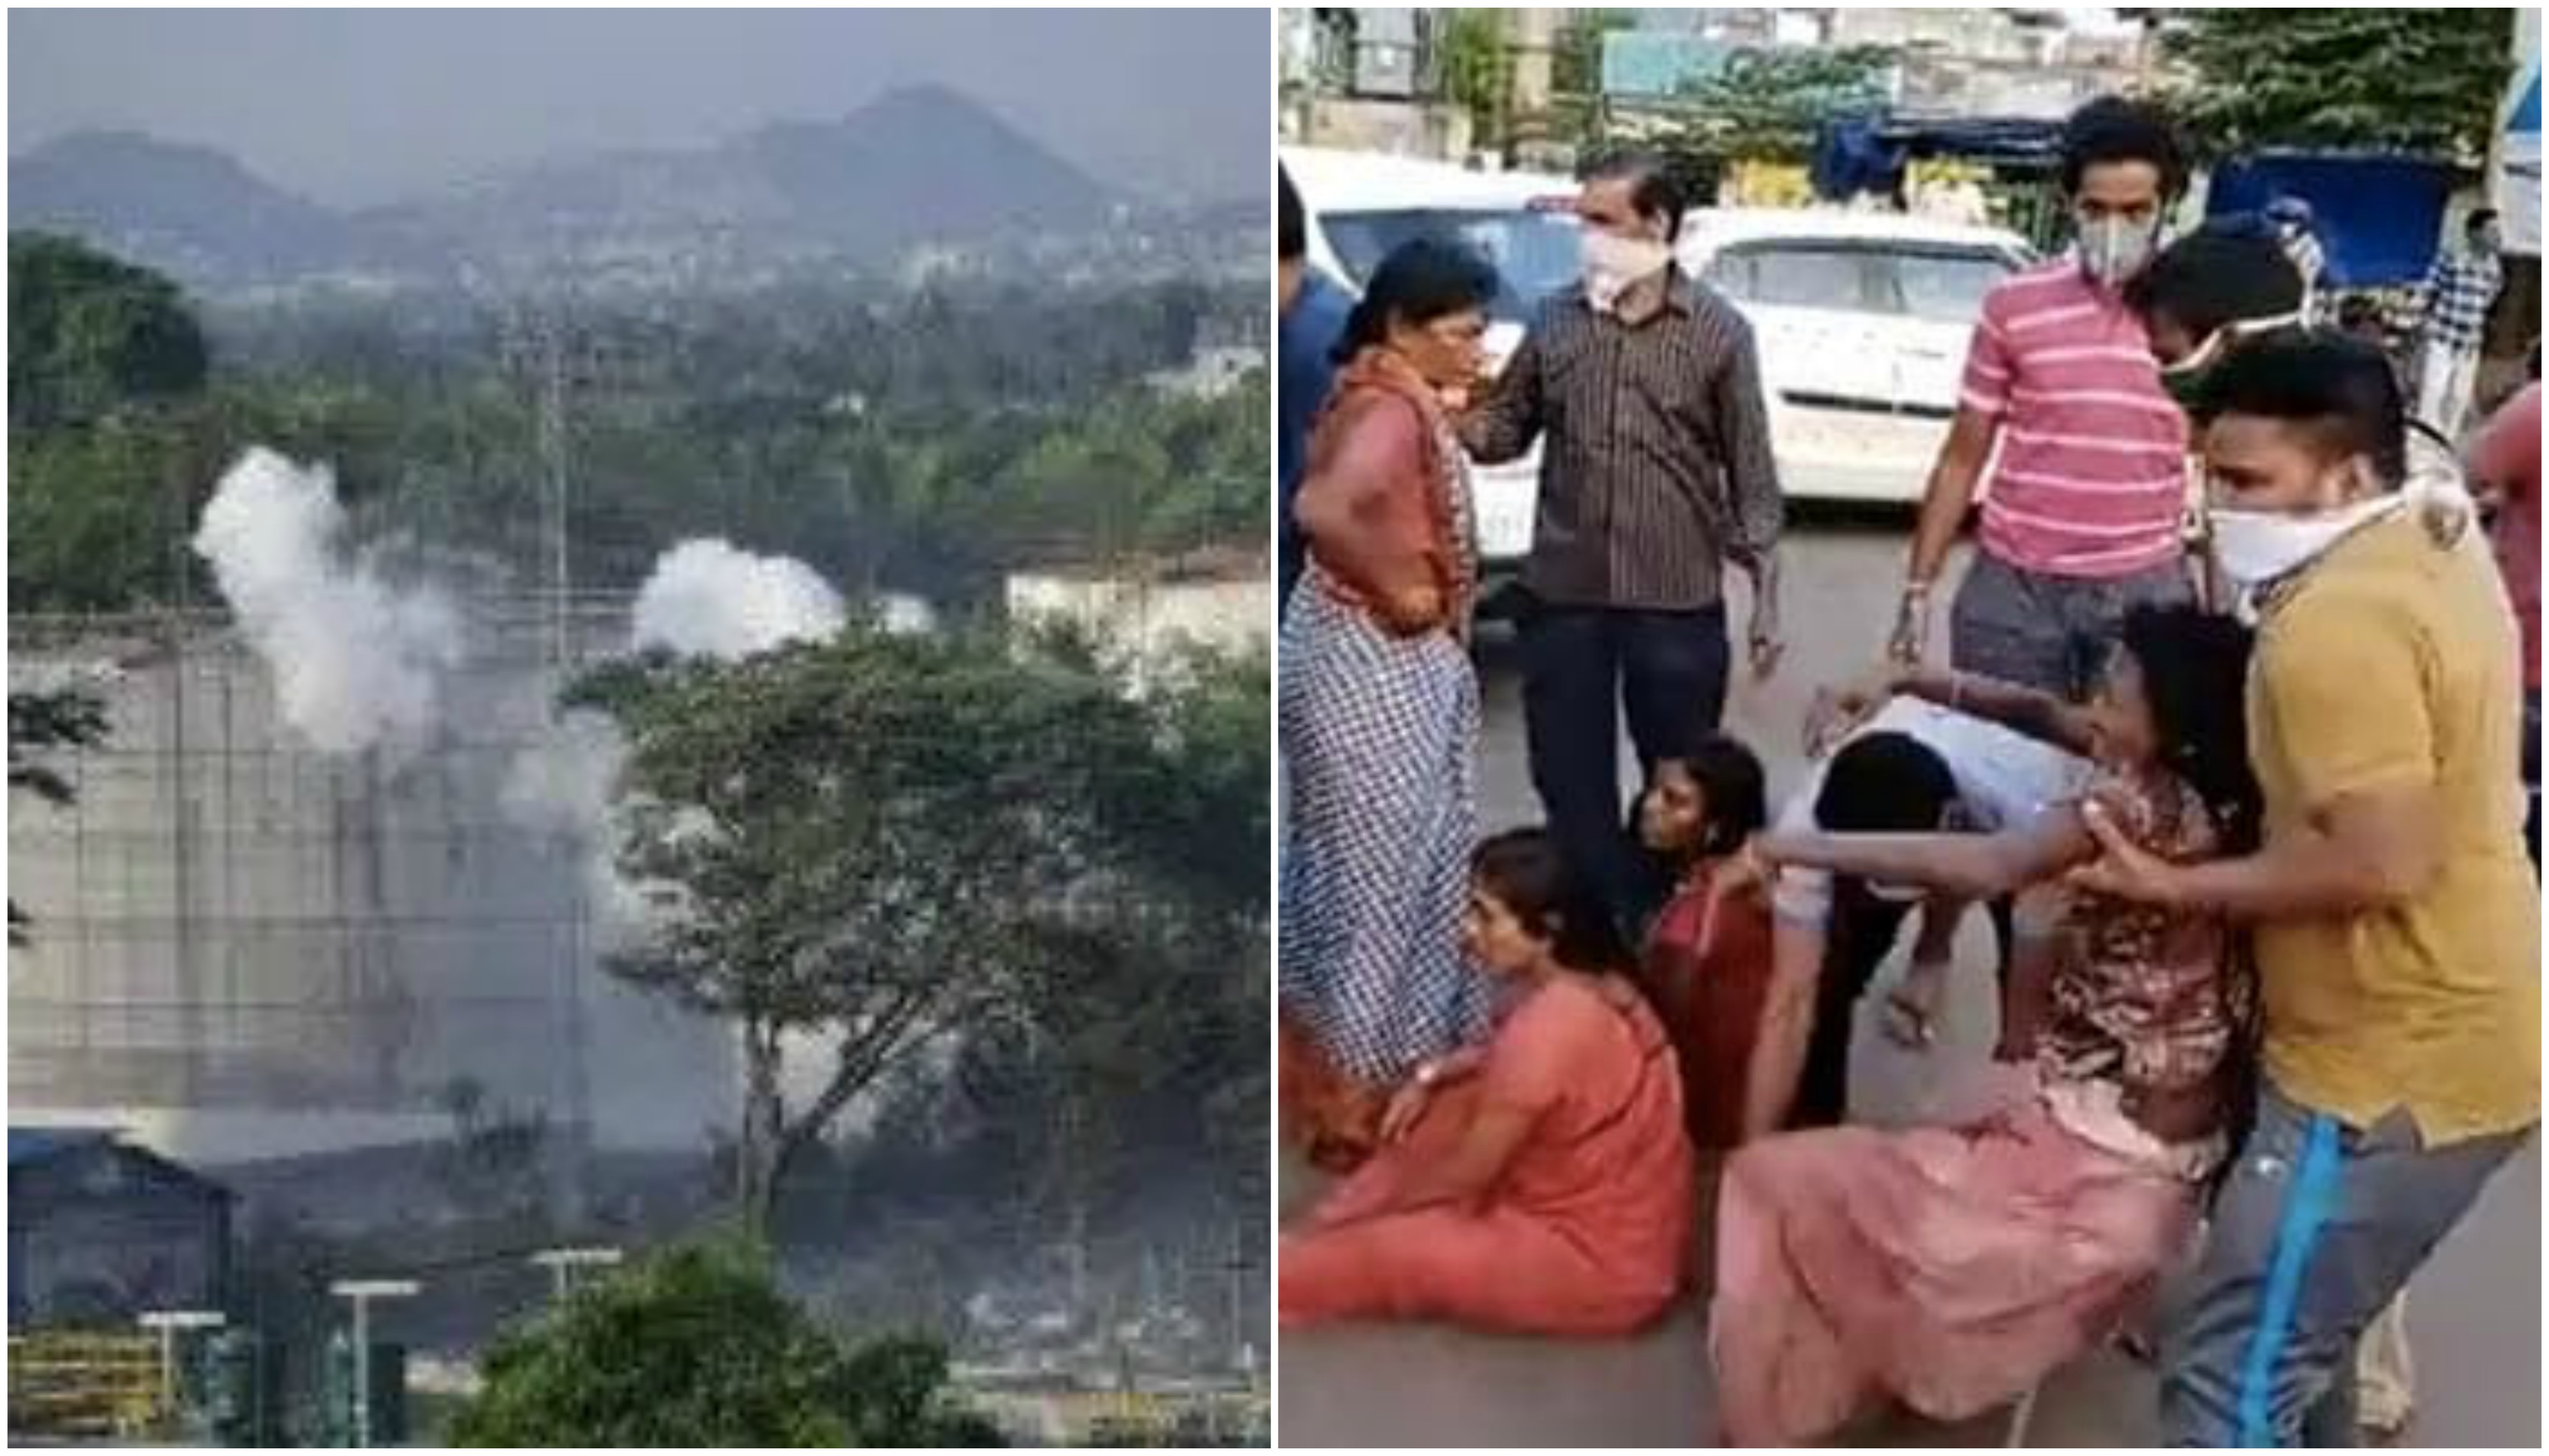 Visakhapatnam Gas Leak: Need To Be Vigilant And Ensure Just And Quick Compensation